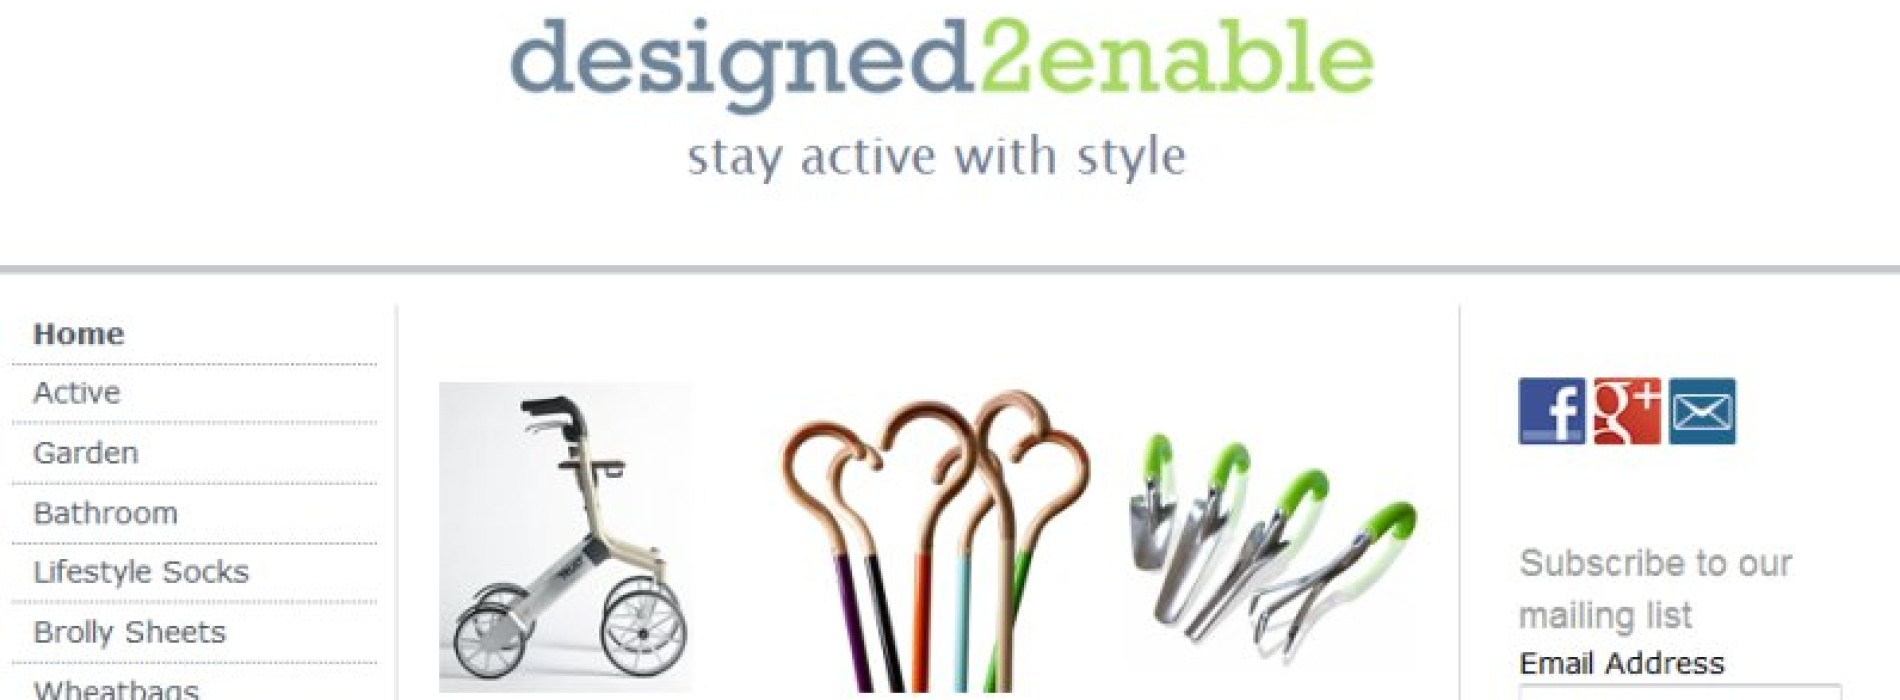 Designed2enable: assisted living products